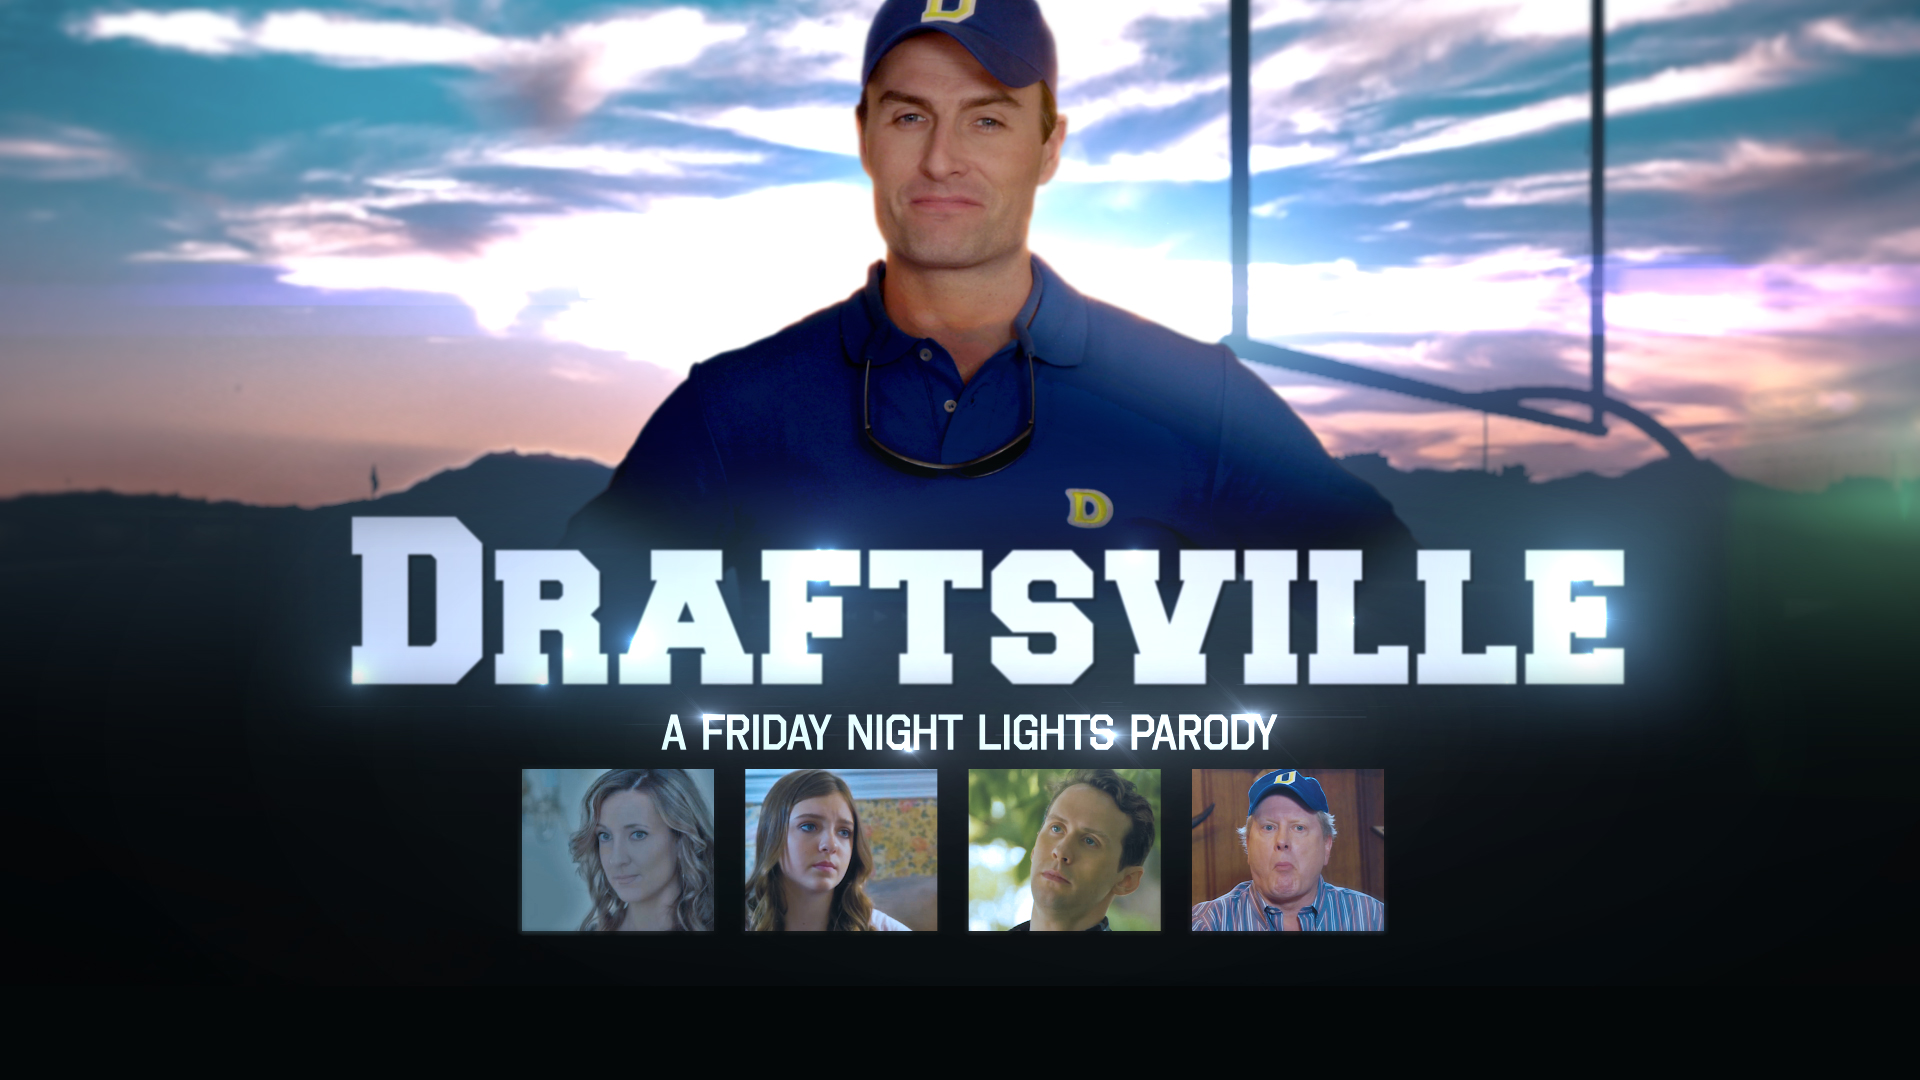 ep welcome to draftsville nbc sports ep 1 welcome to draftsville